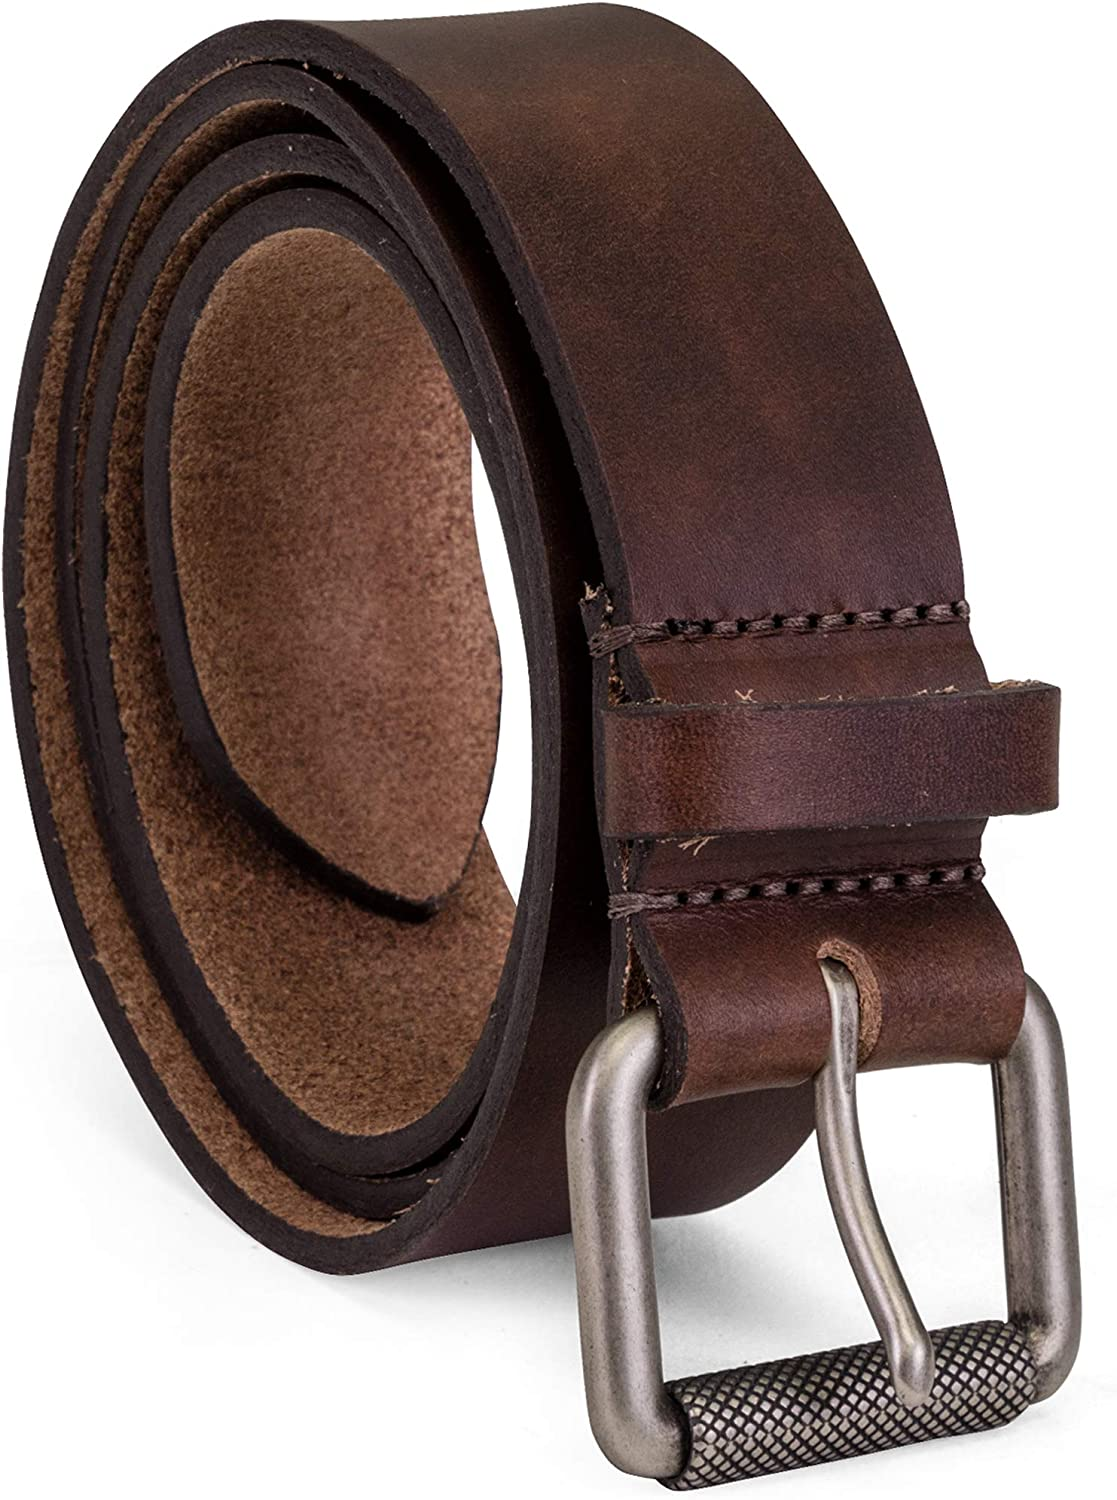 Colonial Belt Company Men's Made in The USA Casual Leather Jean Belt